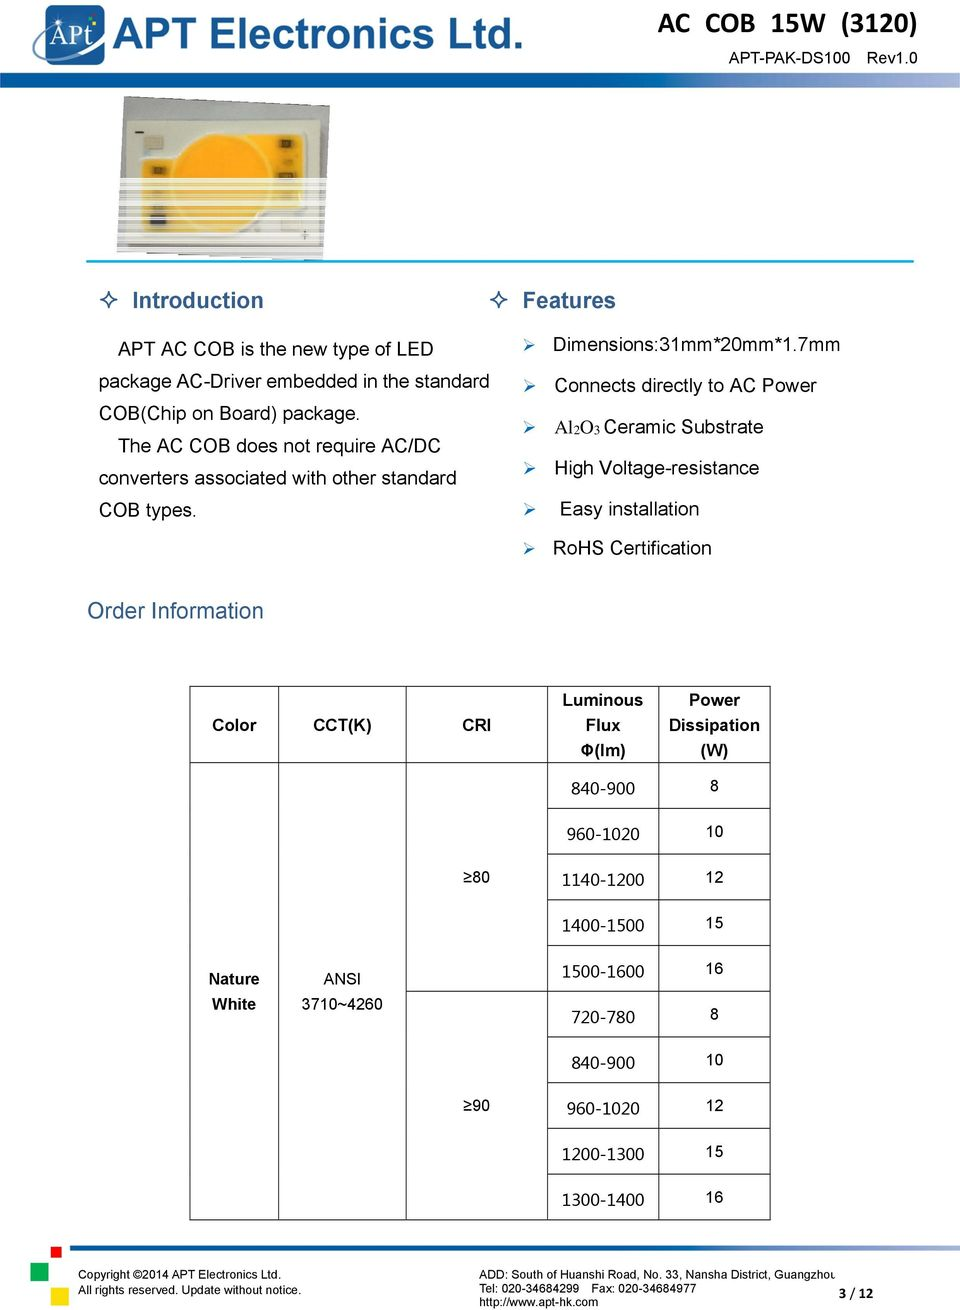 The AC COB does not require AC/DC converters associated with other standard COB types.